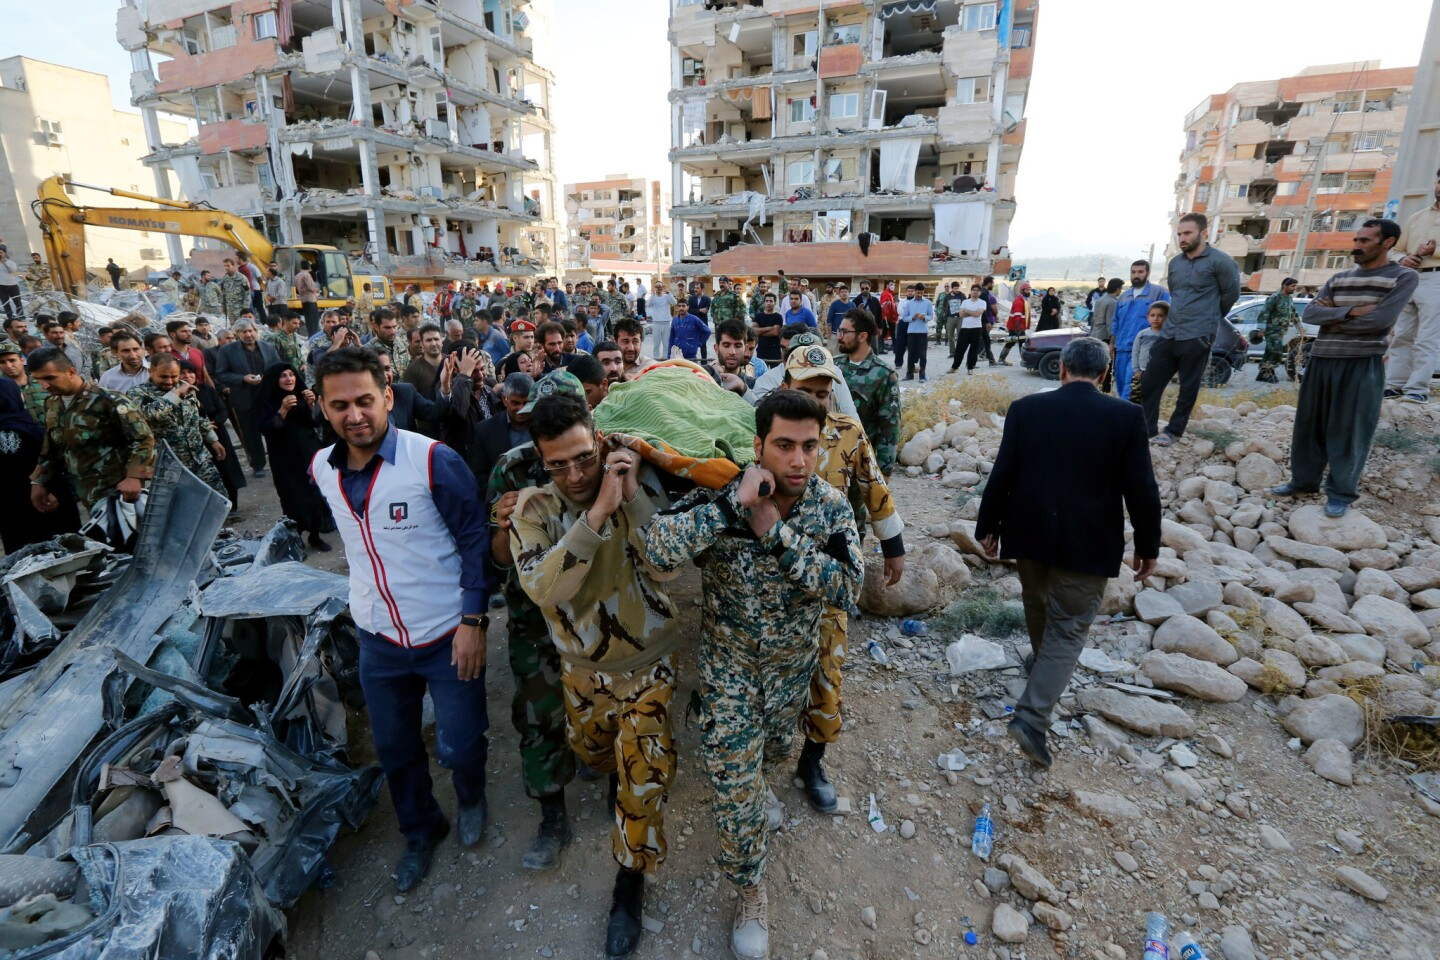 Iranian soldiers carry the body of an earthquake victim near the wreckage of a collapsed building in the city of Pole-Zahab, in Kermanshah province, Iran, on Nov. 13. A 7.2 magnitude earthquake that struck Iran's the province bordering Iraq has killed more than 328 people and left at least 3,950 injured, Iranian authorities said.